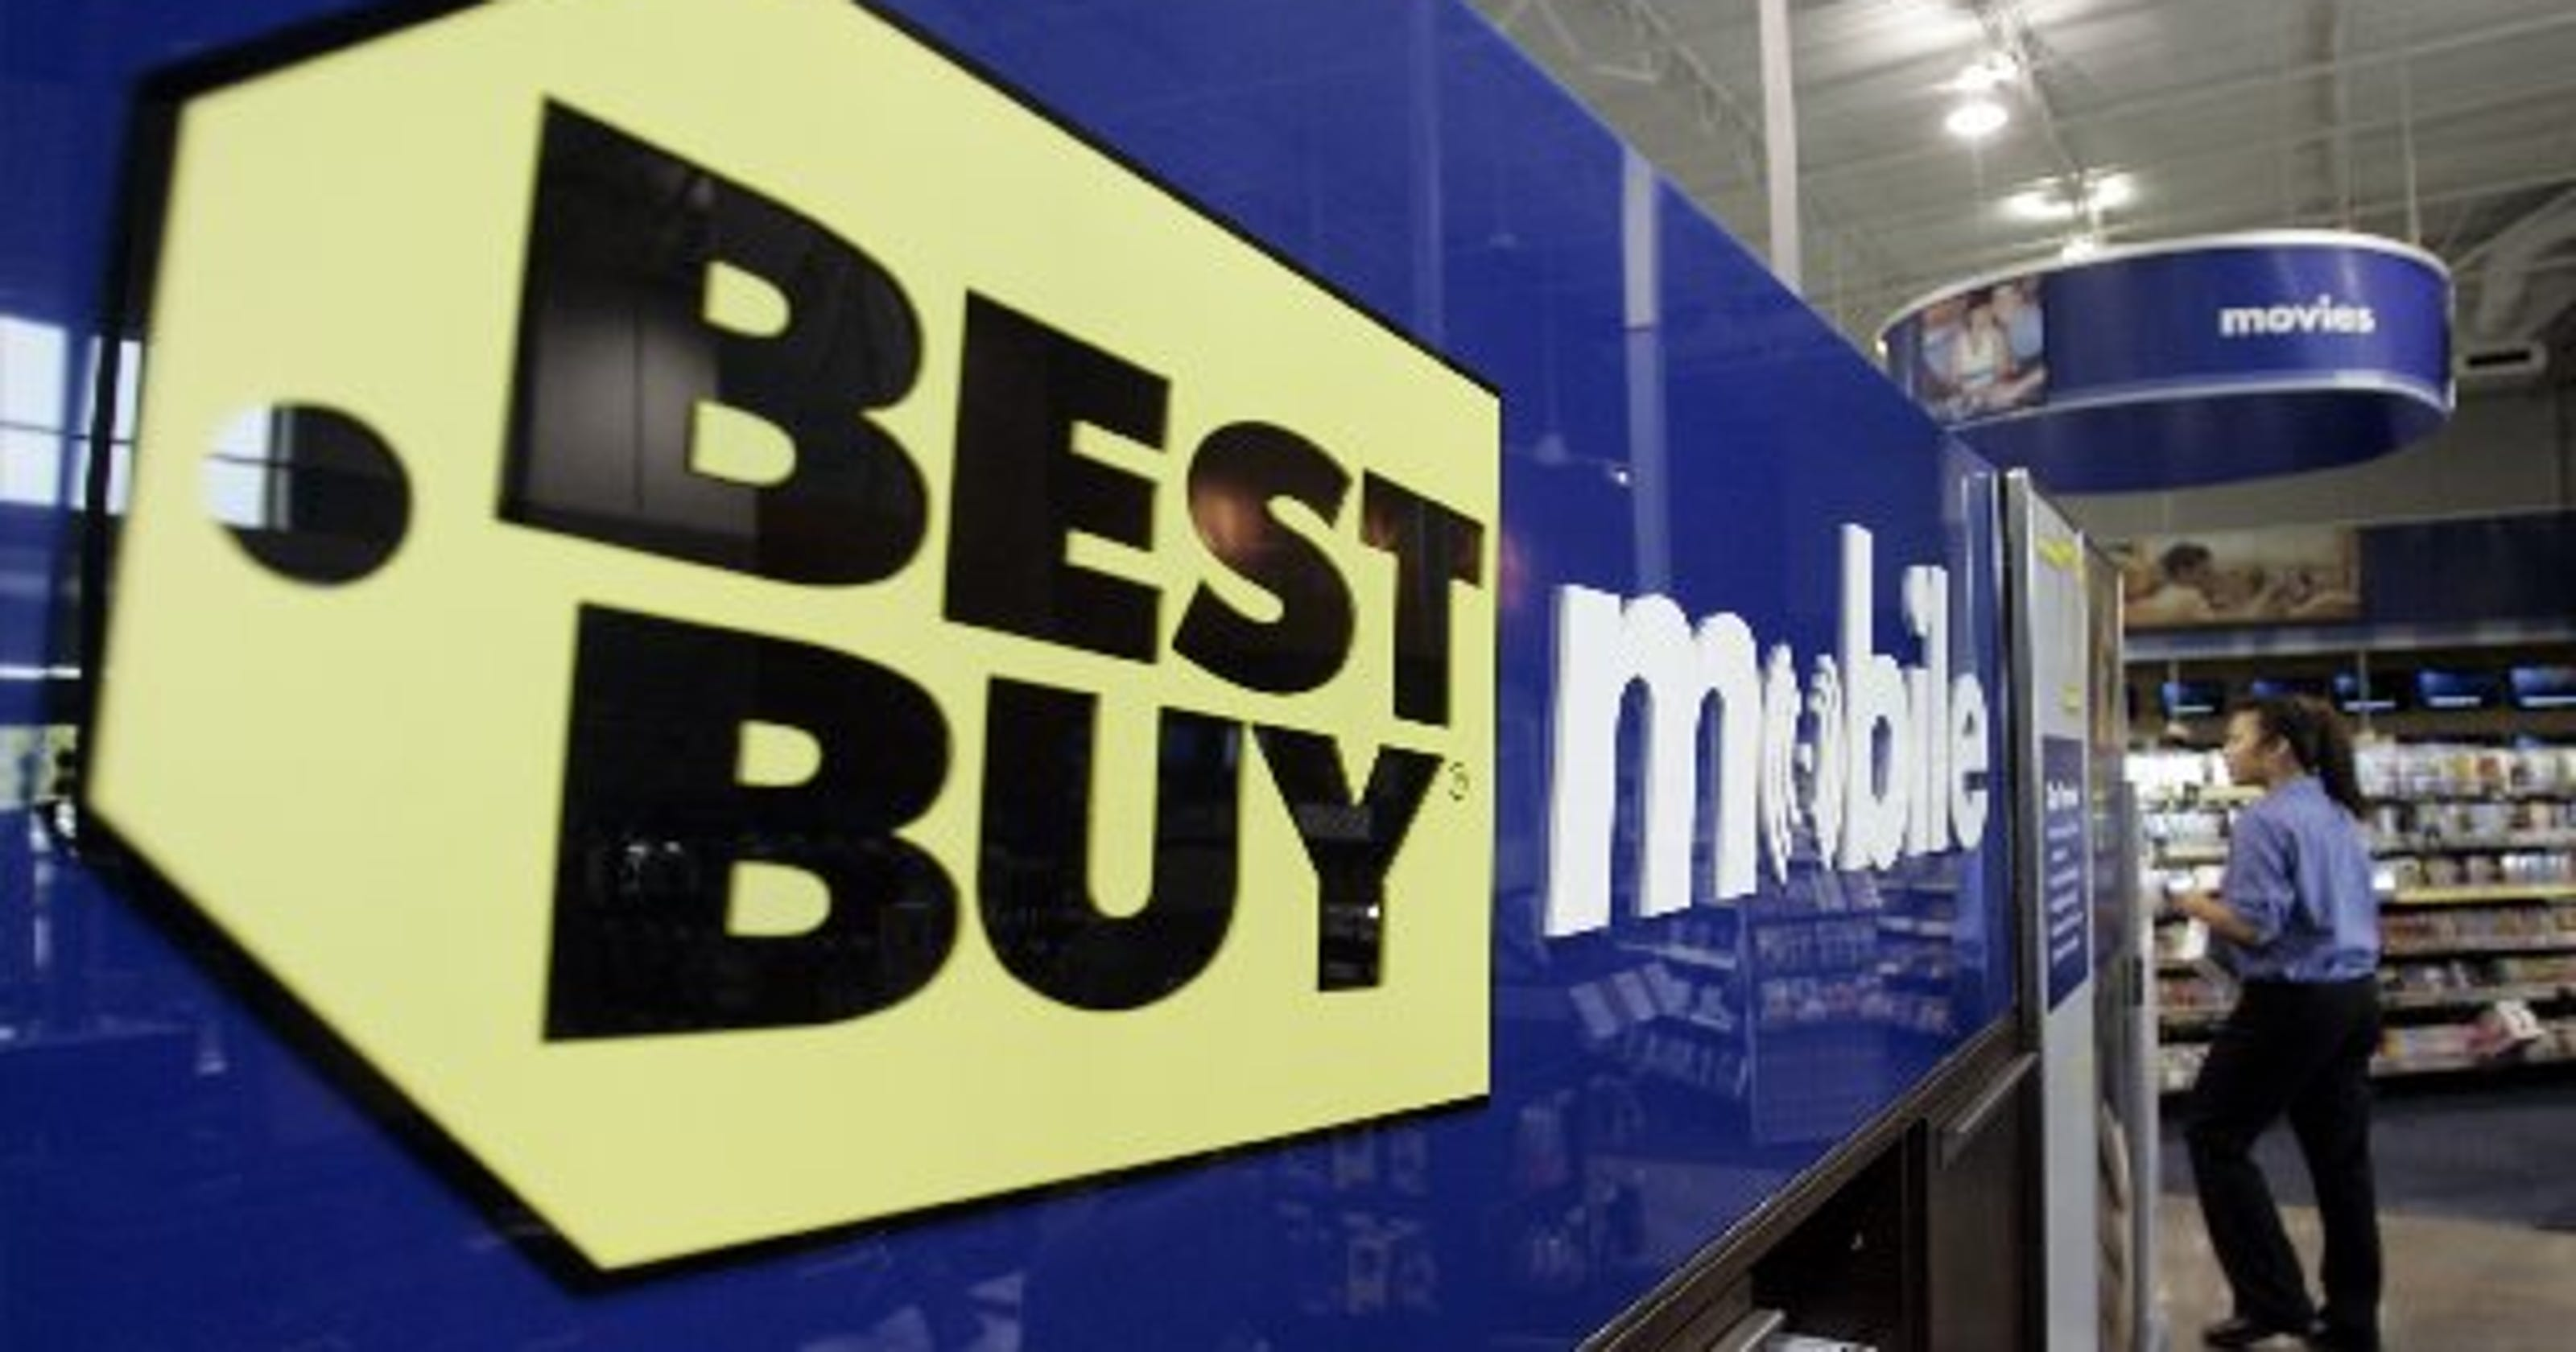 best buy mobile stores to close by end of may - Best Buy Christmas Hours 2014